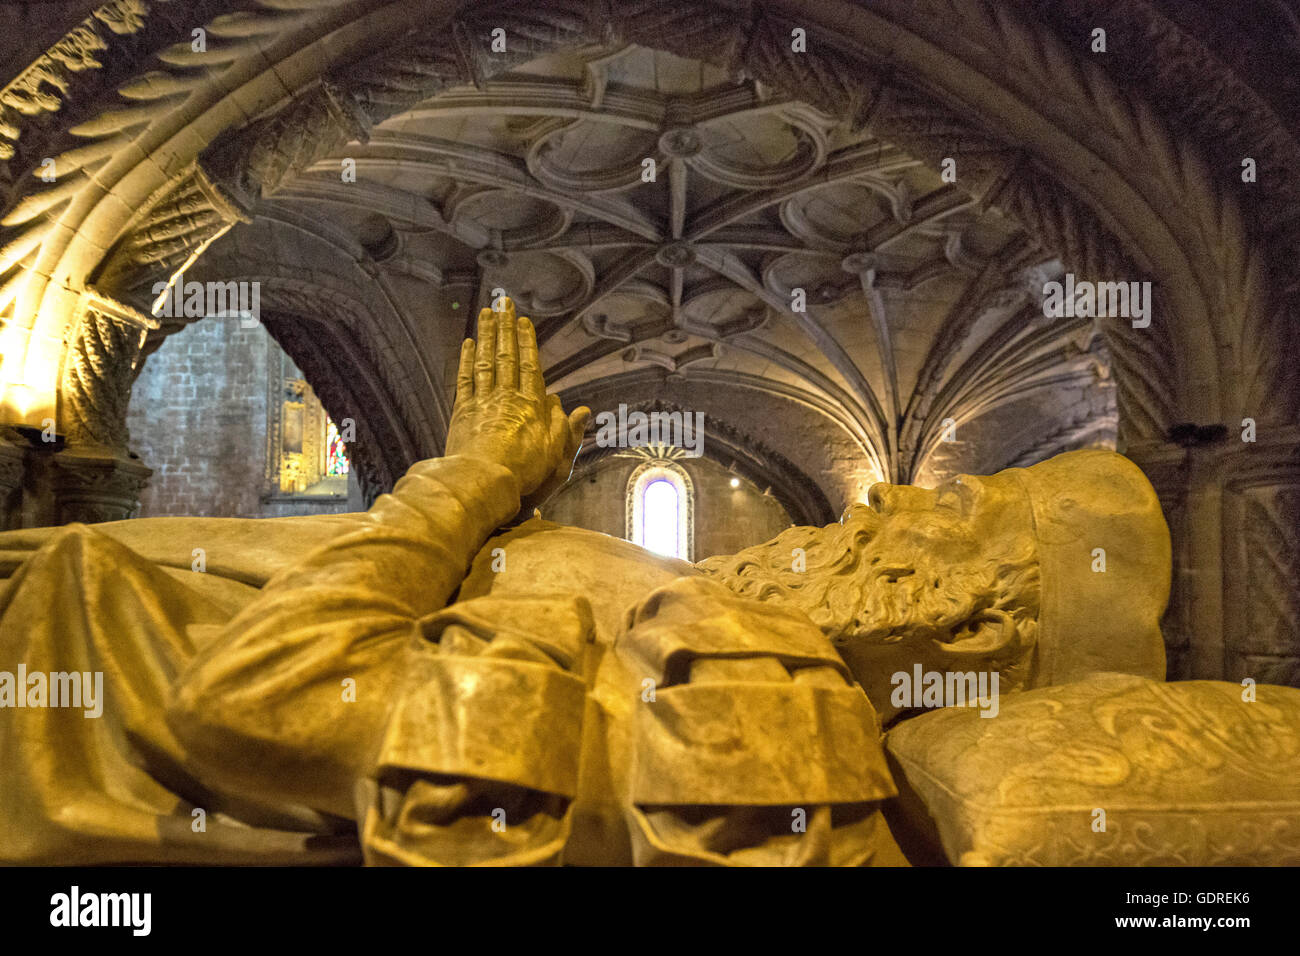 Tomb of the discoverer Vasco da Gama, Jerónimos Monastery, UNESCO World Heritage Site, Lisbon, District of - Stock Image